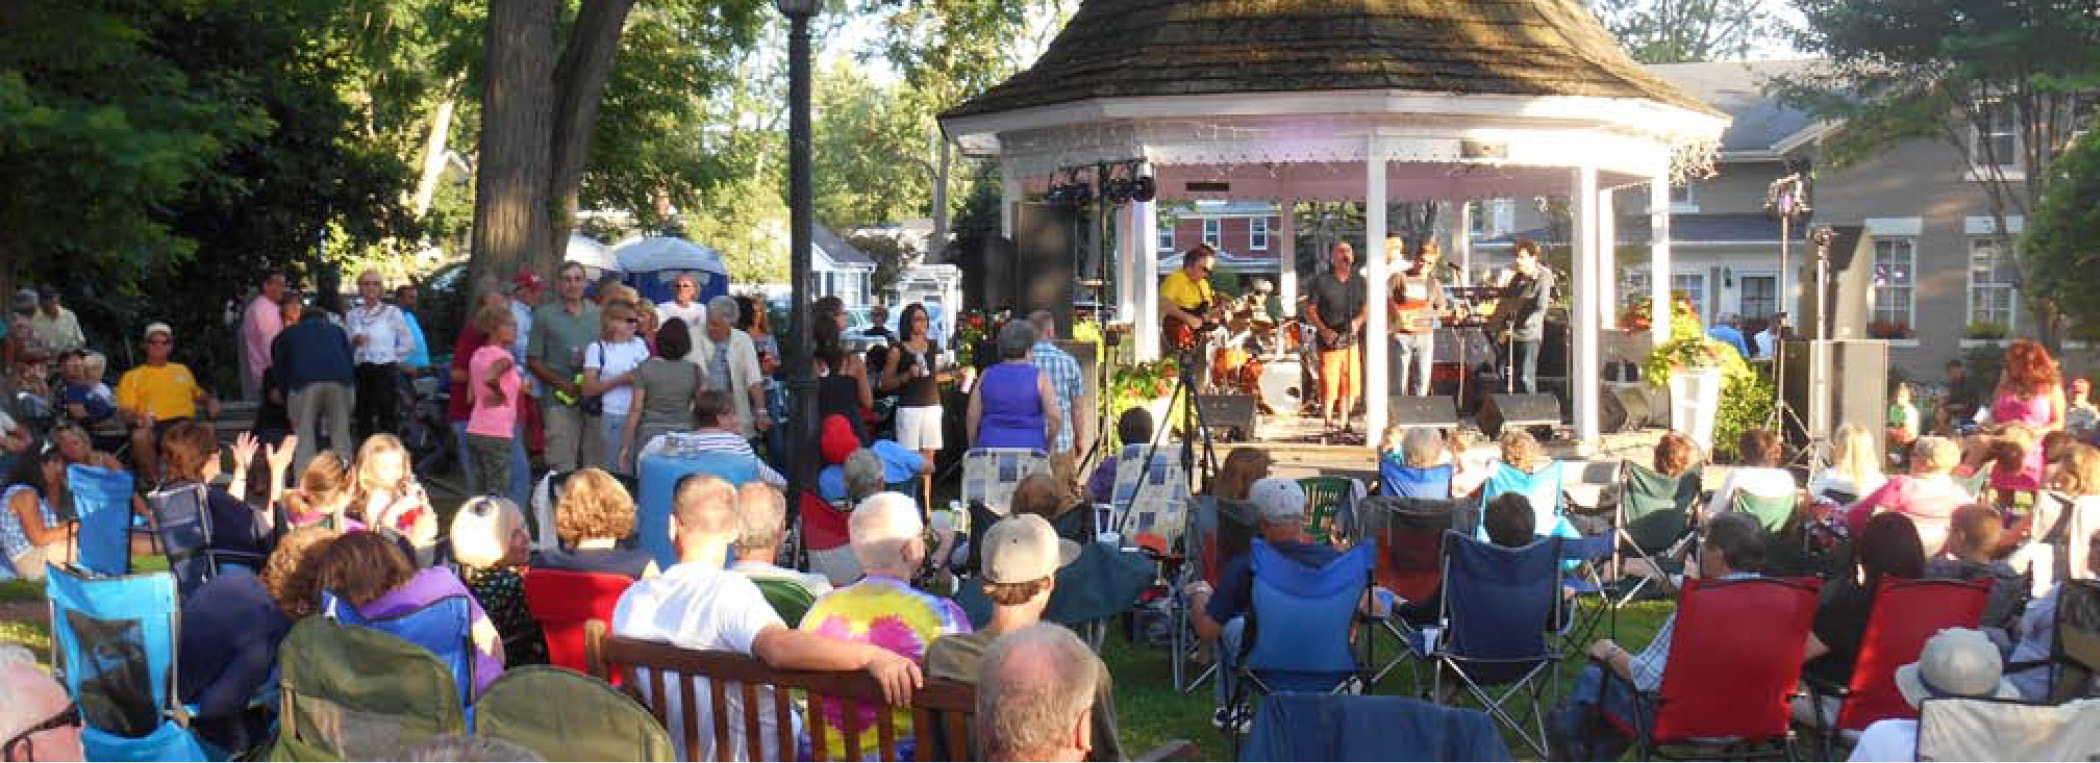 Band Playing in a Gazebo with Crowd